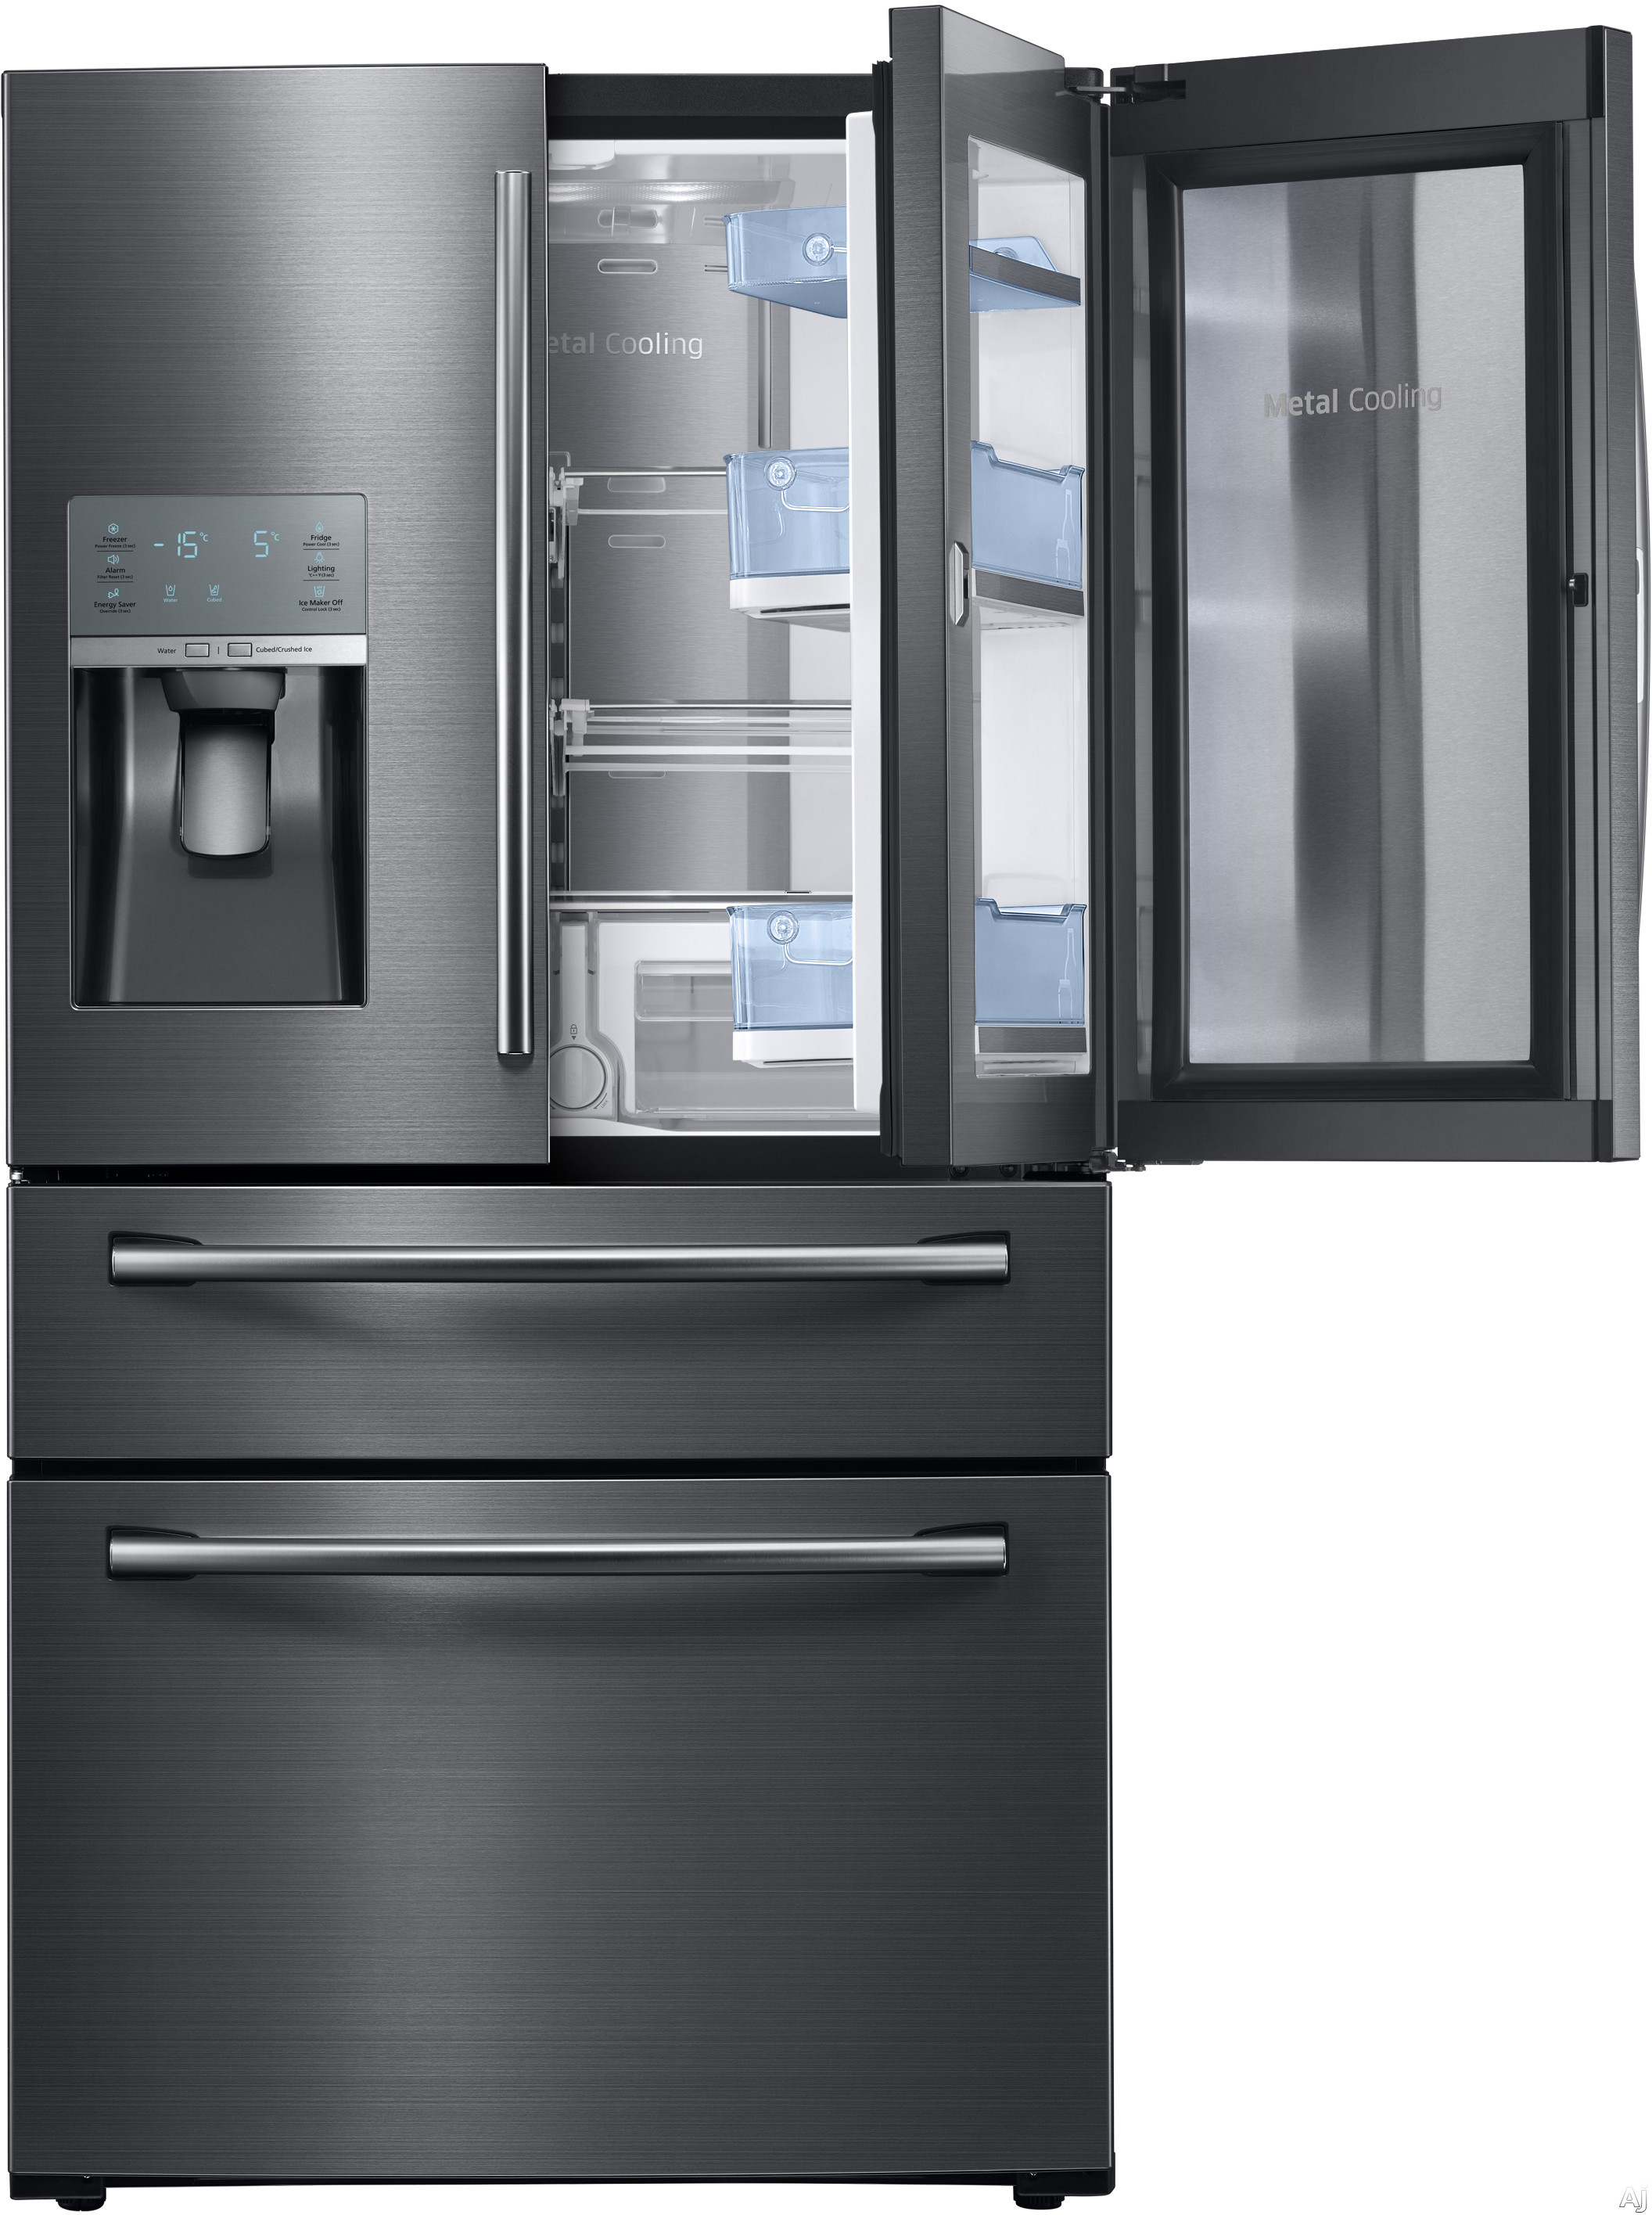 Samsung Rf28jbedbsg 28 Cu Ft French Door Refrigerator